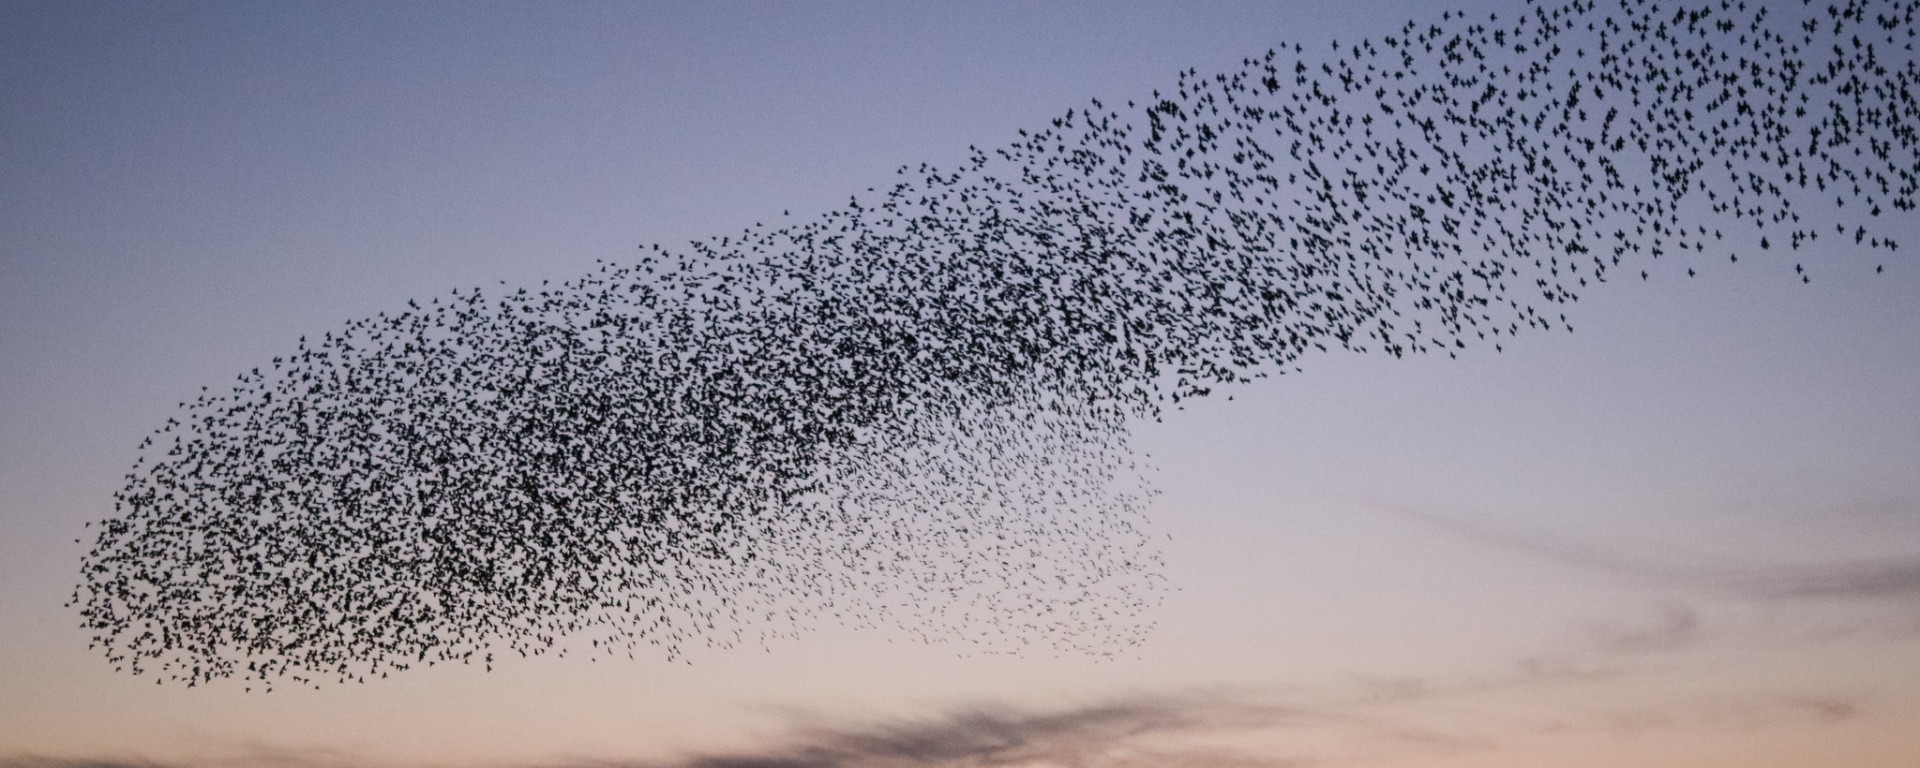 Startling murmuration in the sky at sunset